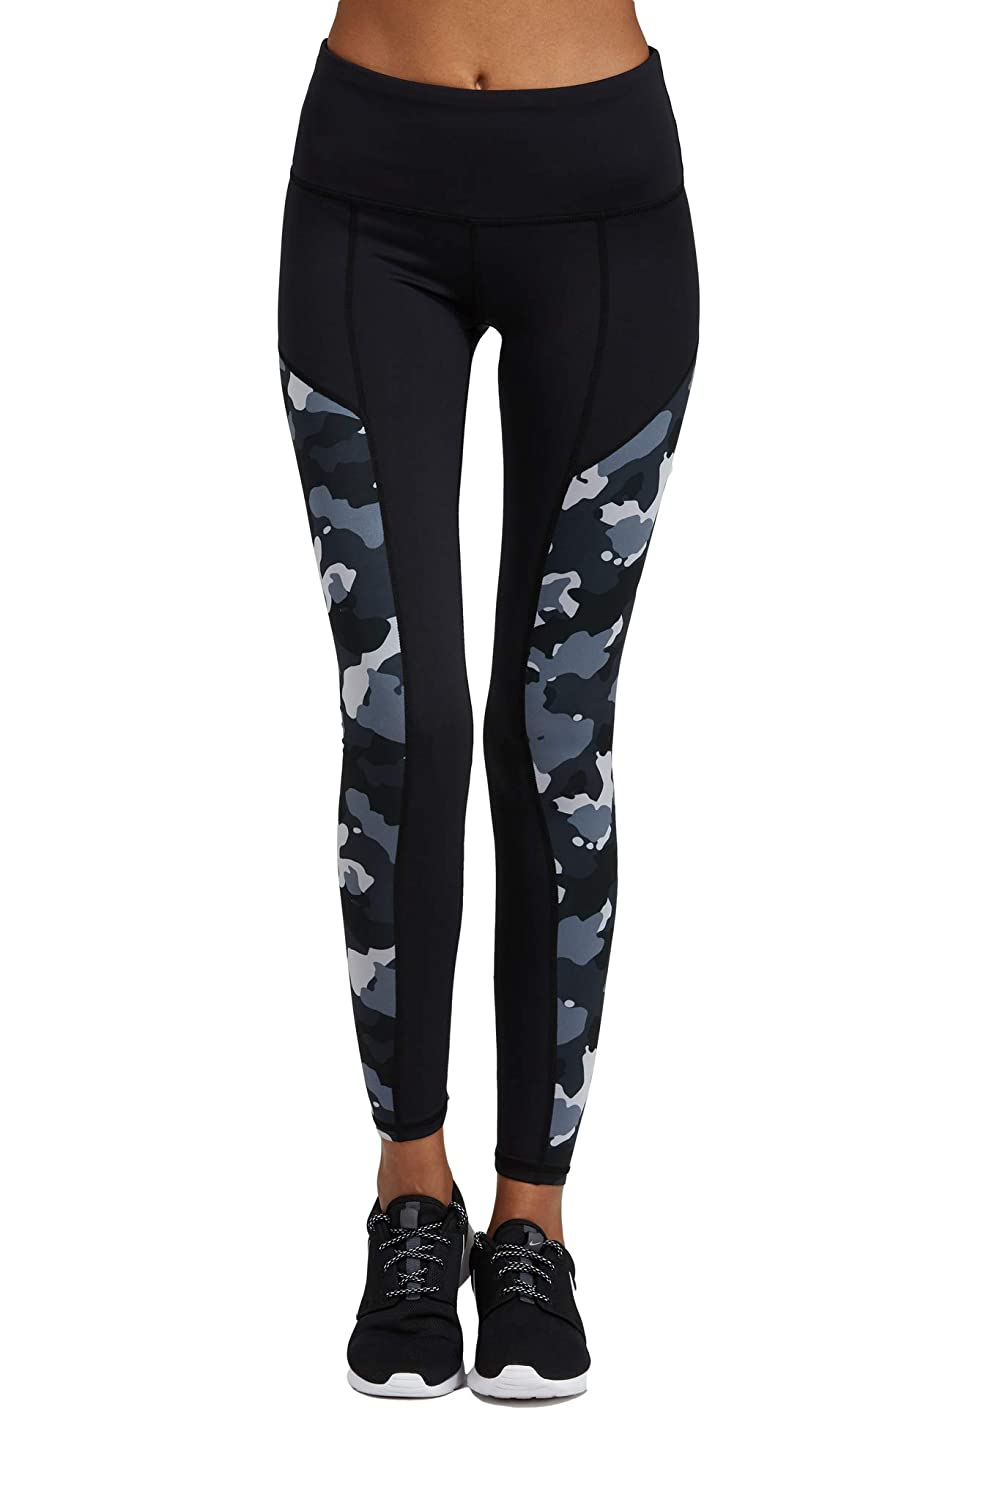 Mvp Camo Medium Noli Yoga Women Activewear Performance Legging